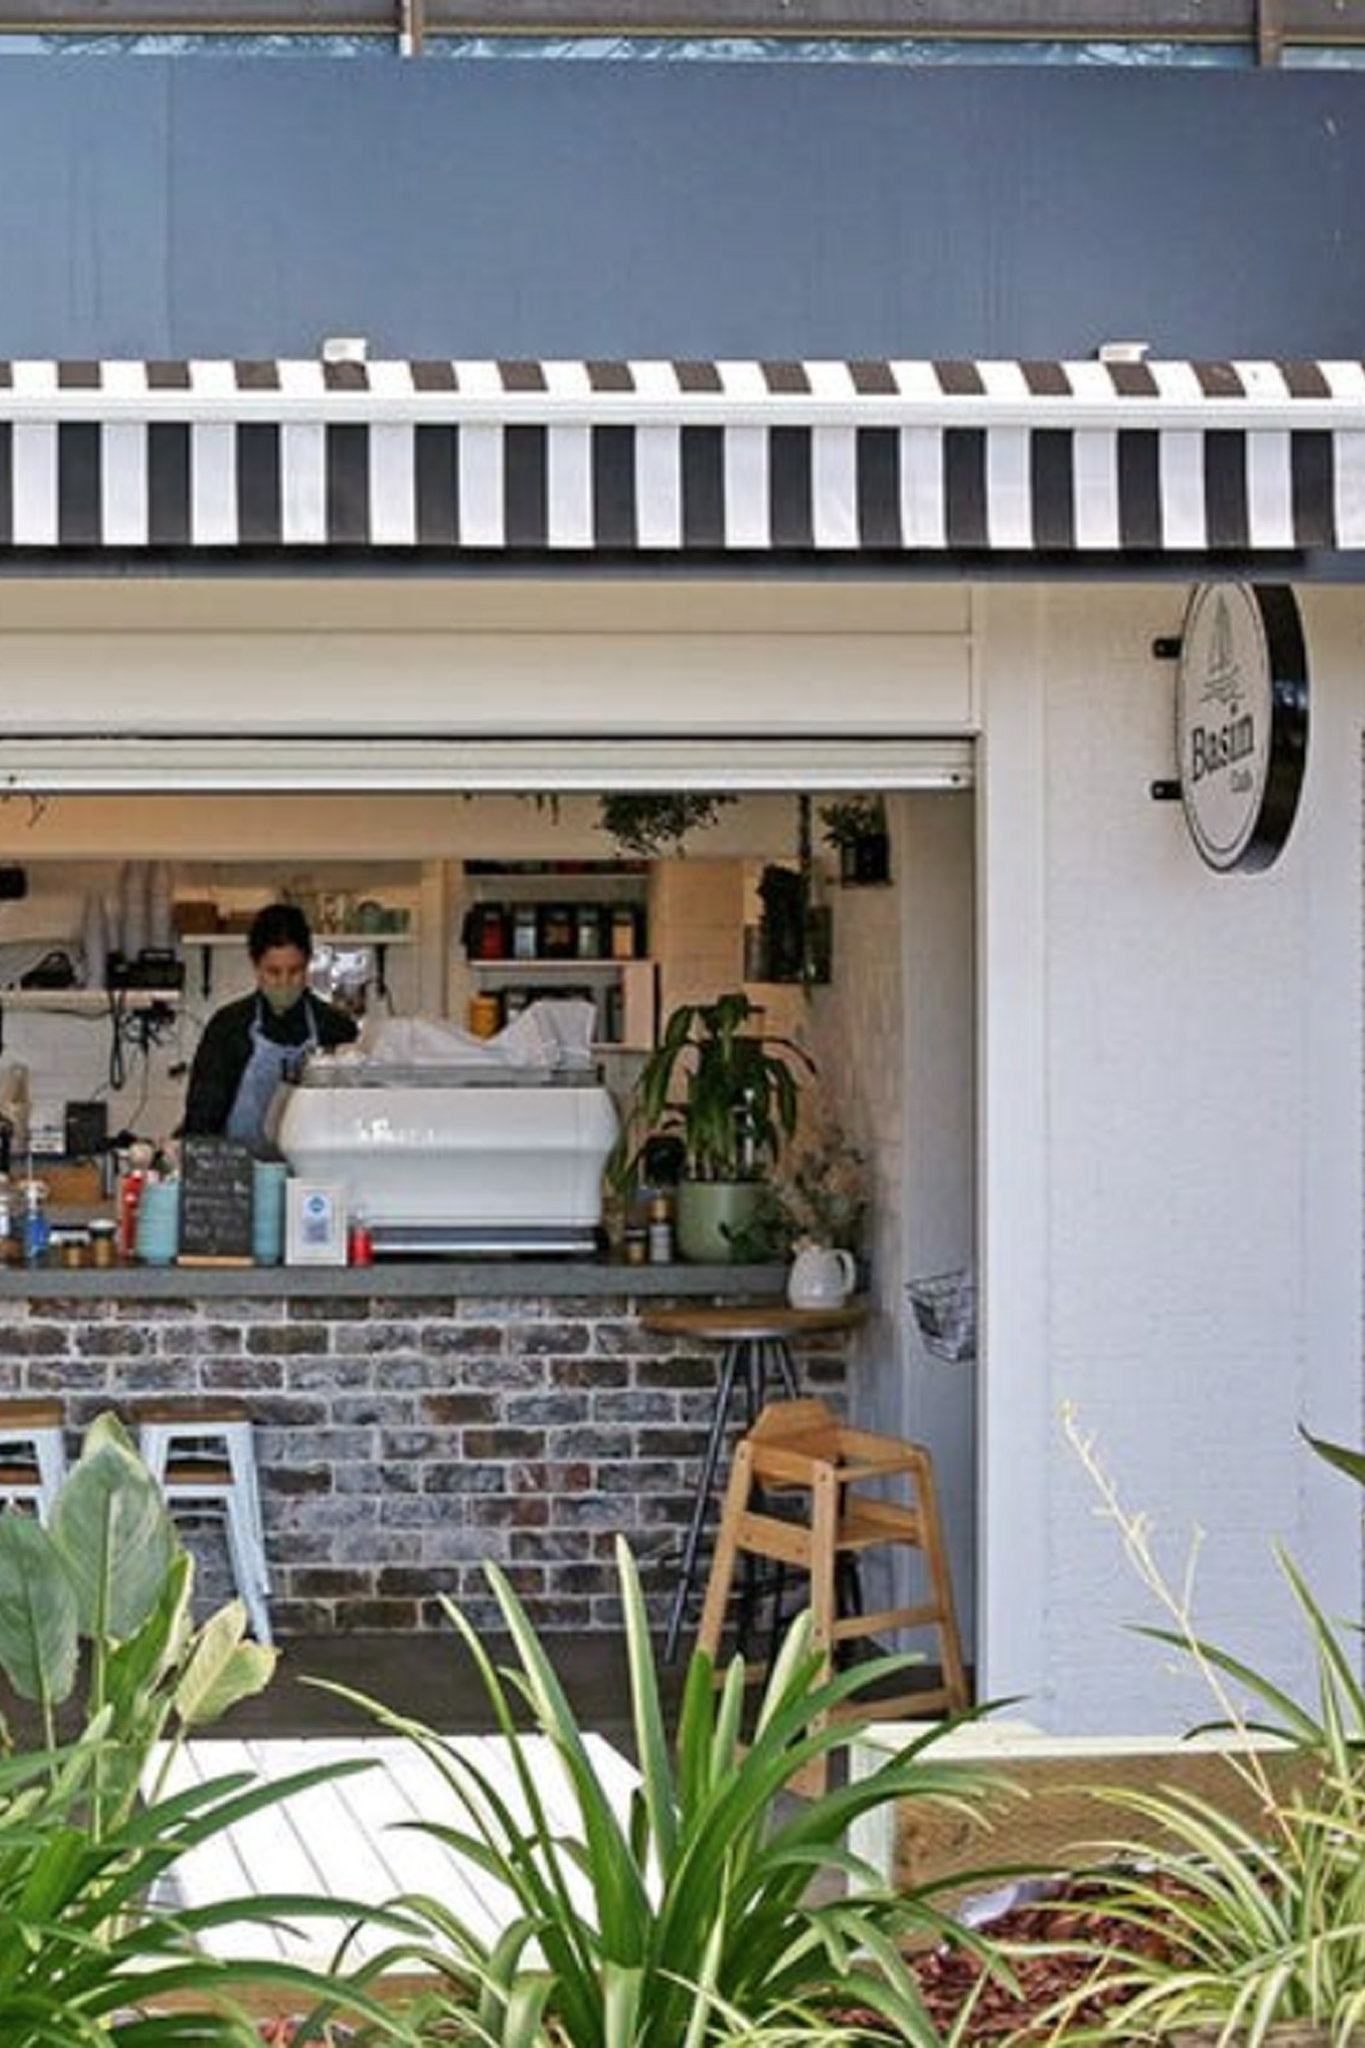 The shop front of the Basin Cafe Wollongong. A man behind a coffee machine, plants in the foreground.